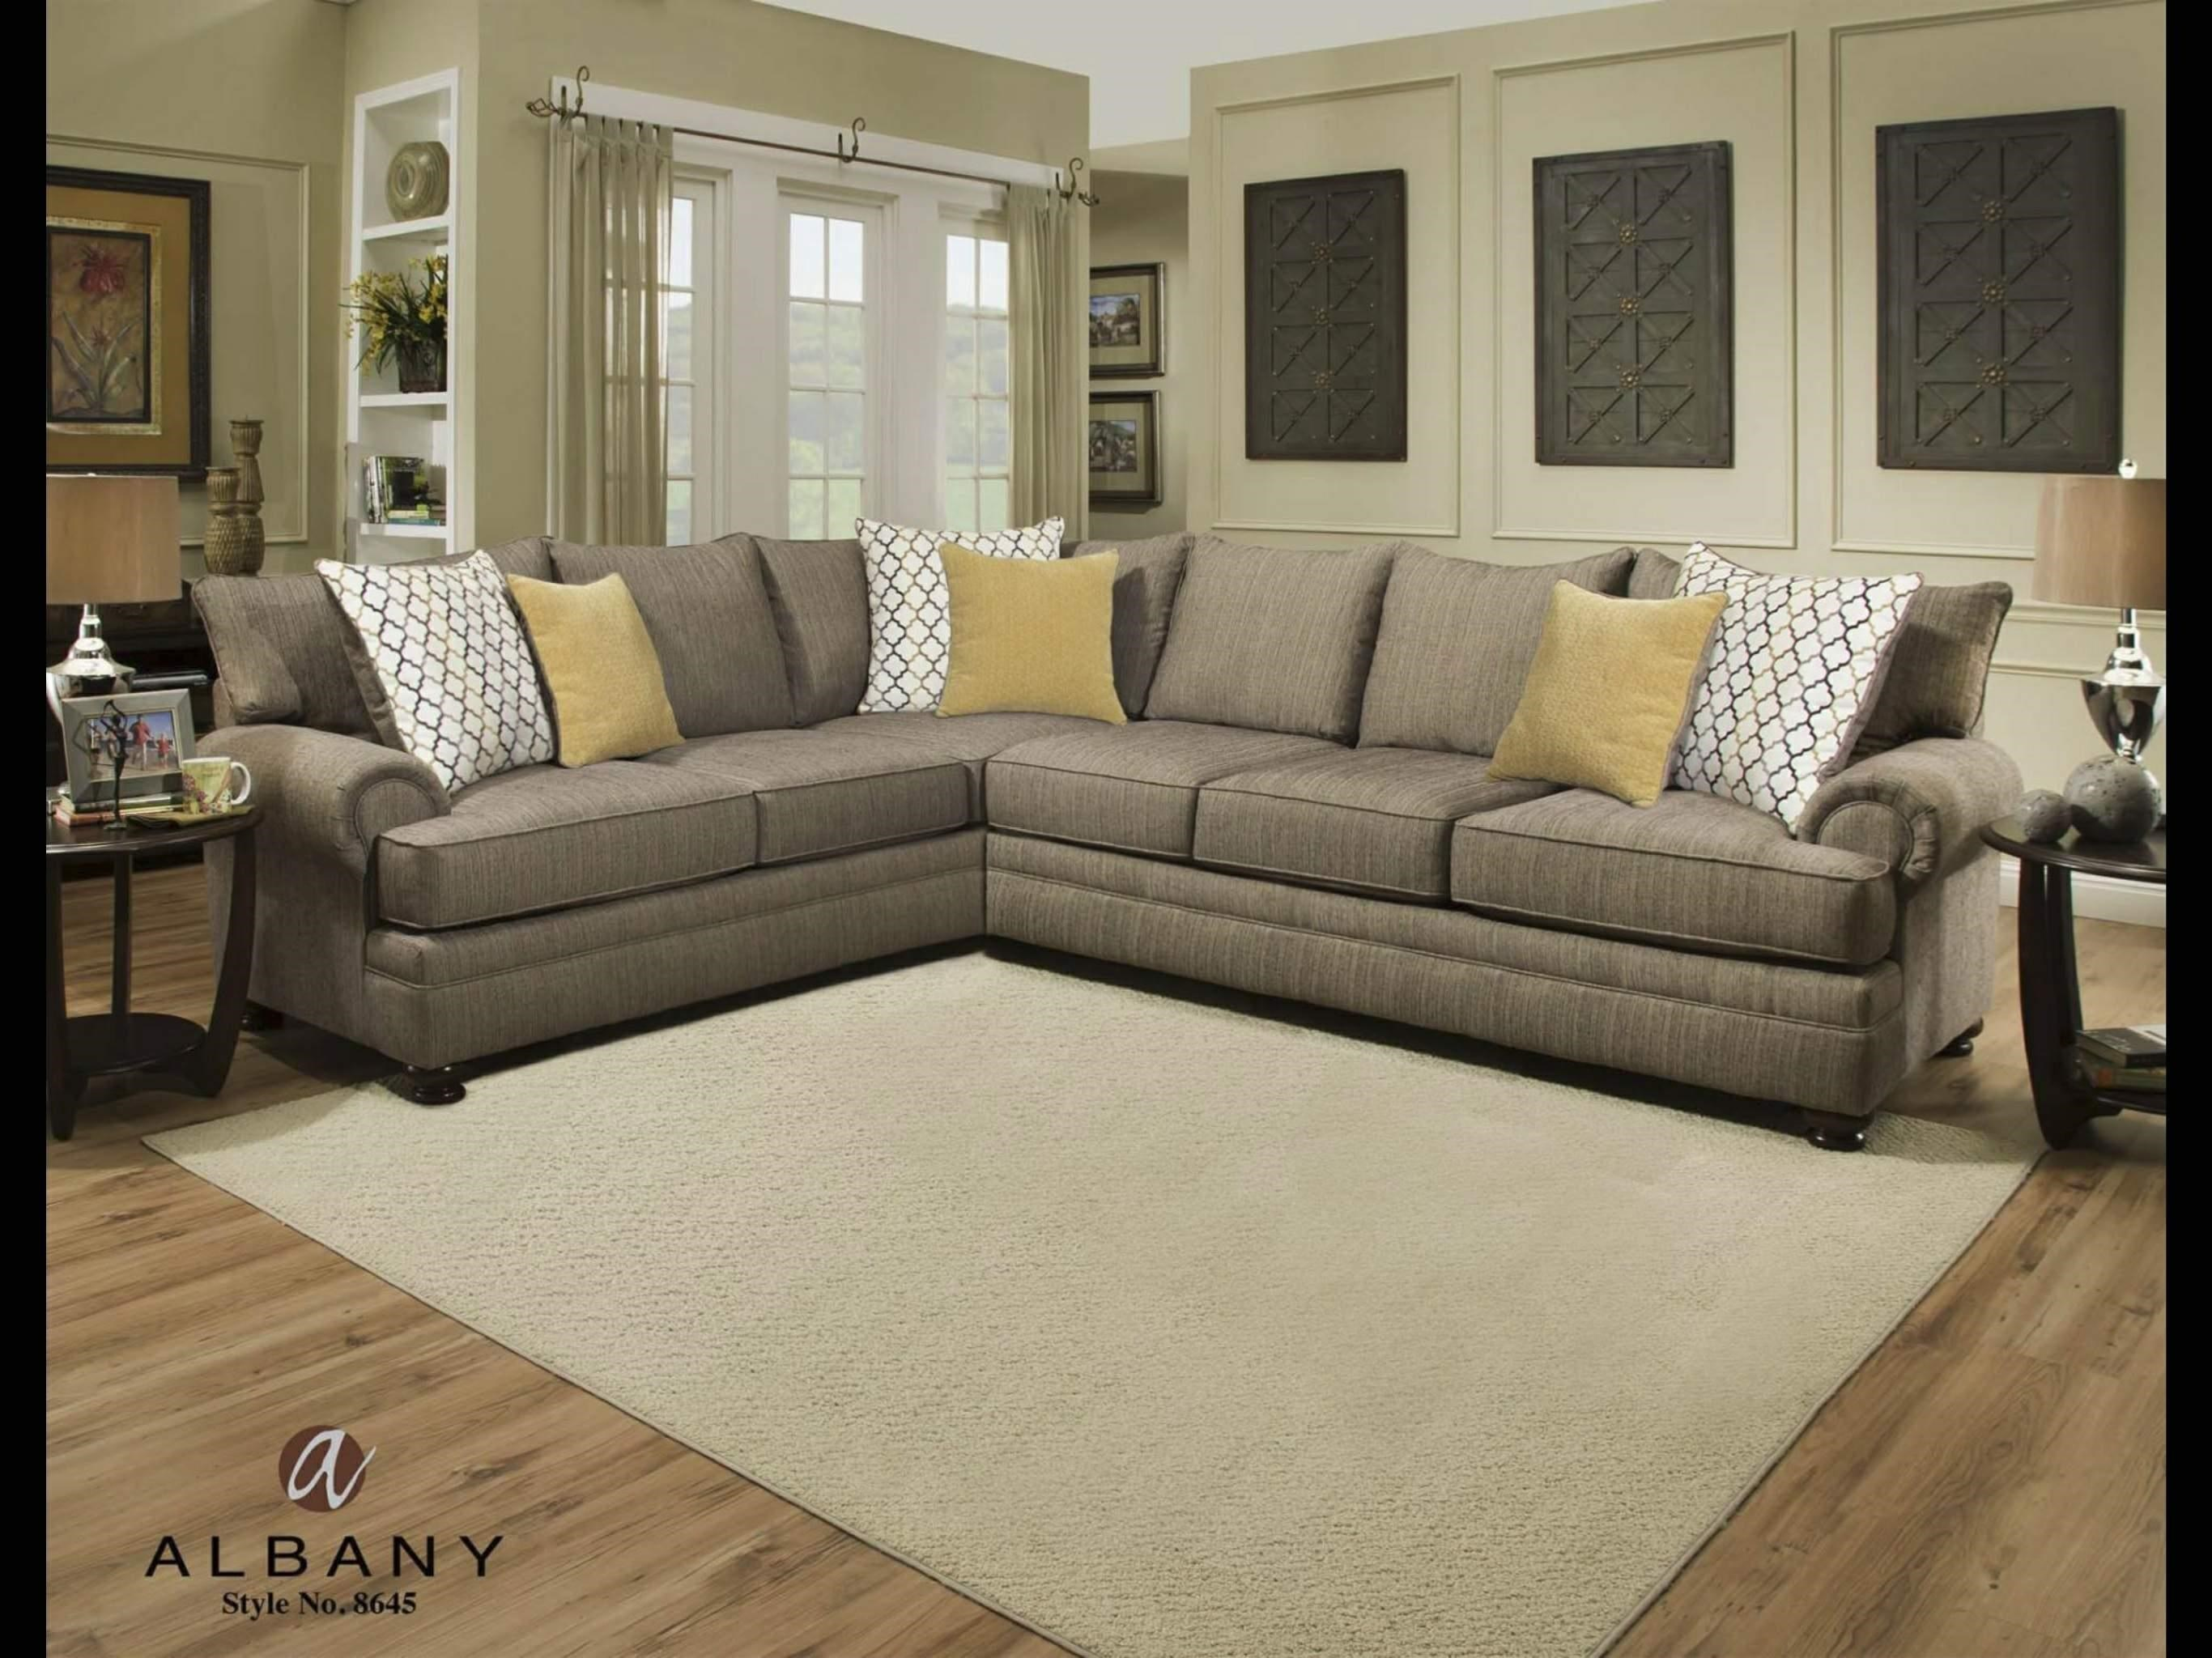 albany essence essence 2 piece sectional great american home store sectional sofas